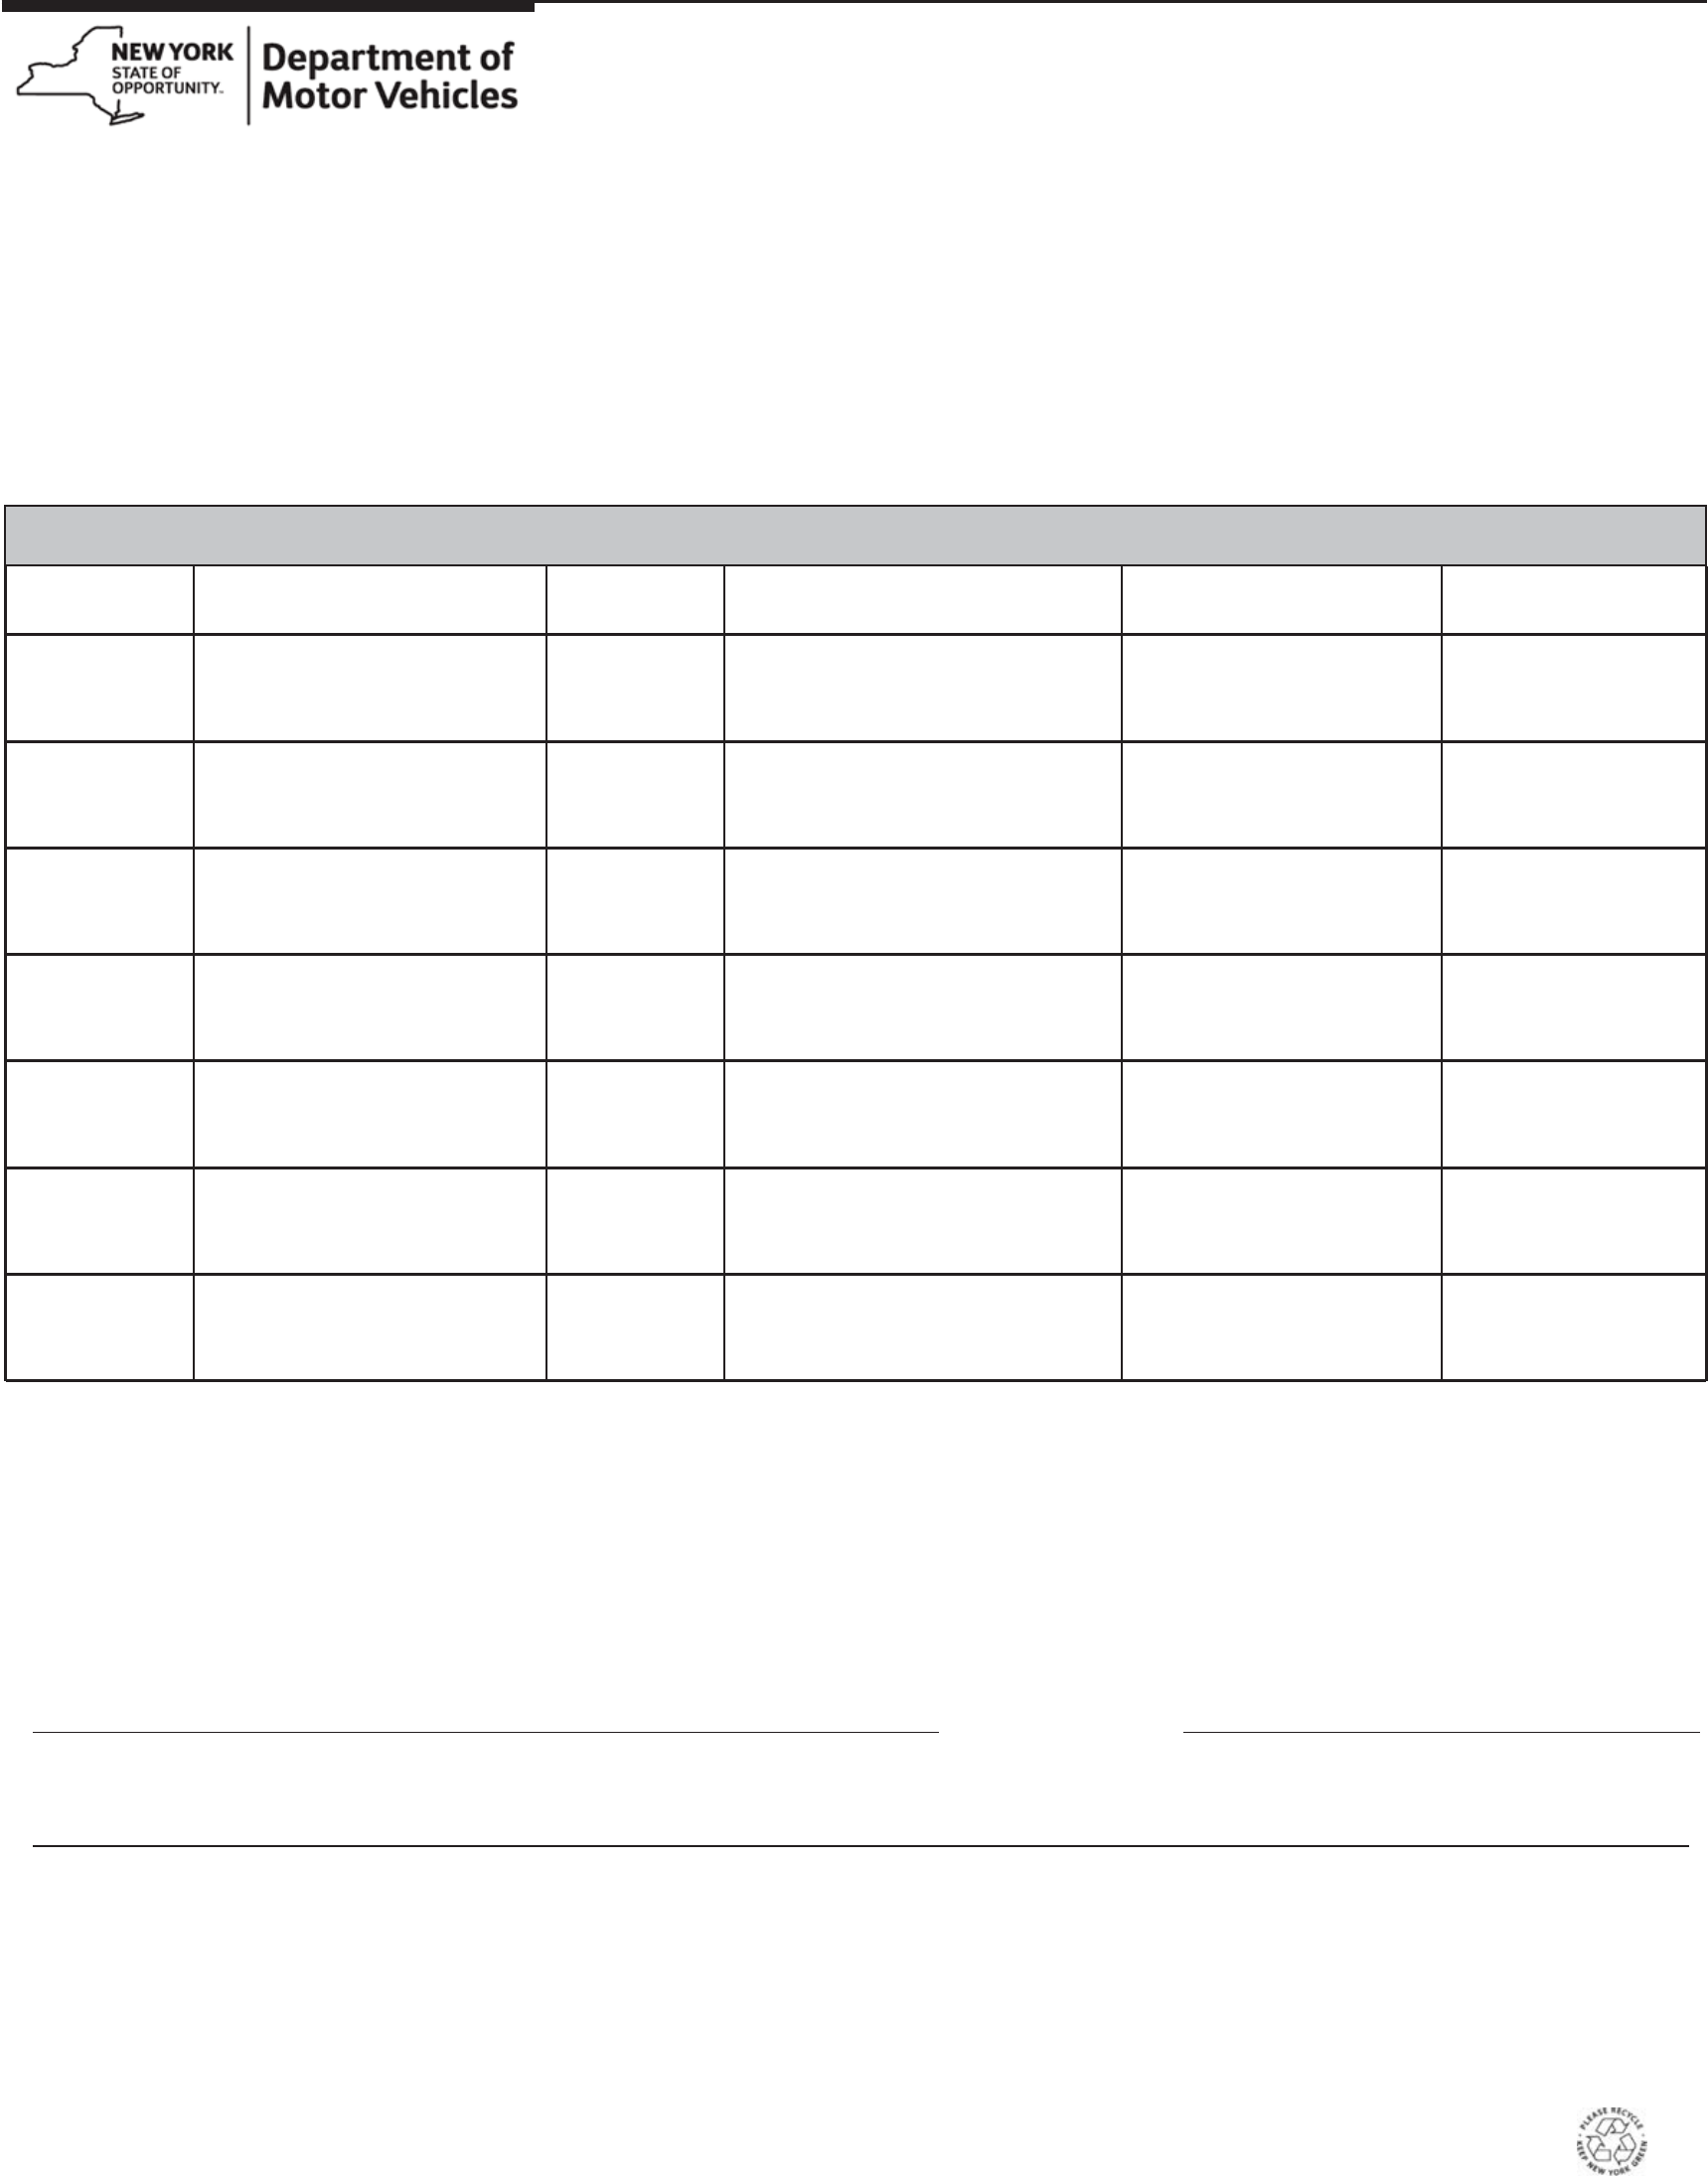 48 hour print templates - form dtp 421 intent to conduct dmv 39 s 30 hour basic